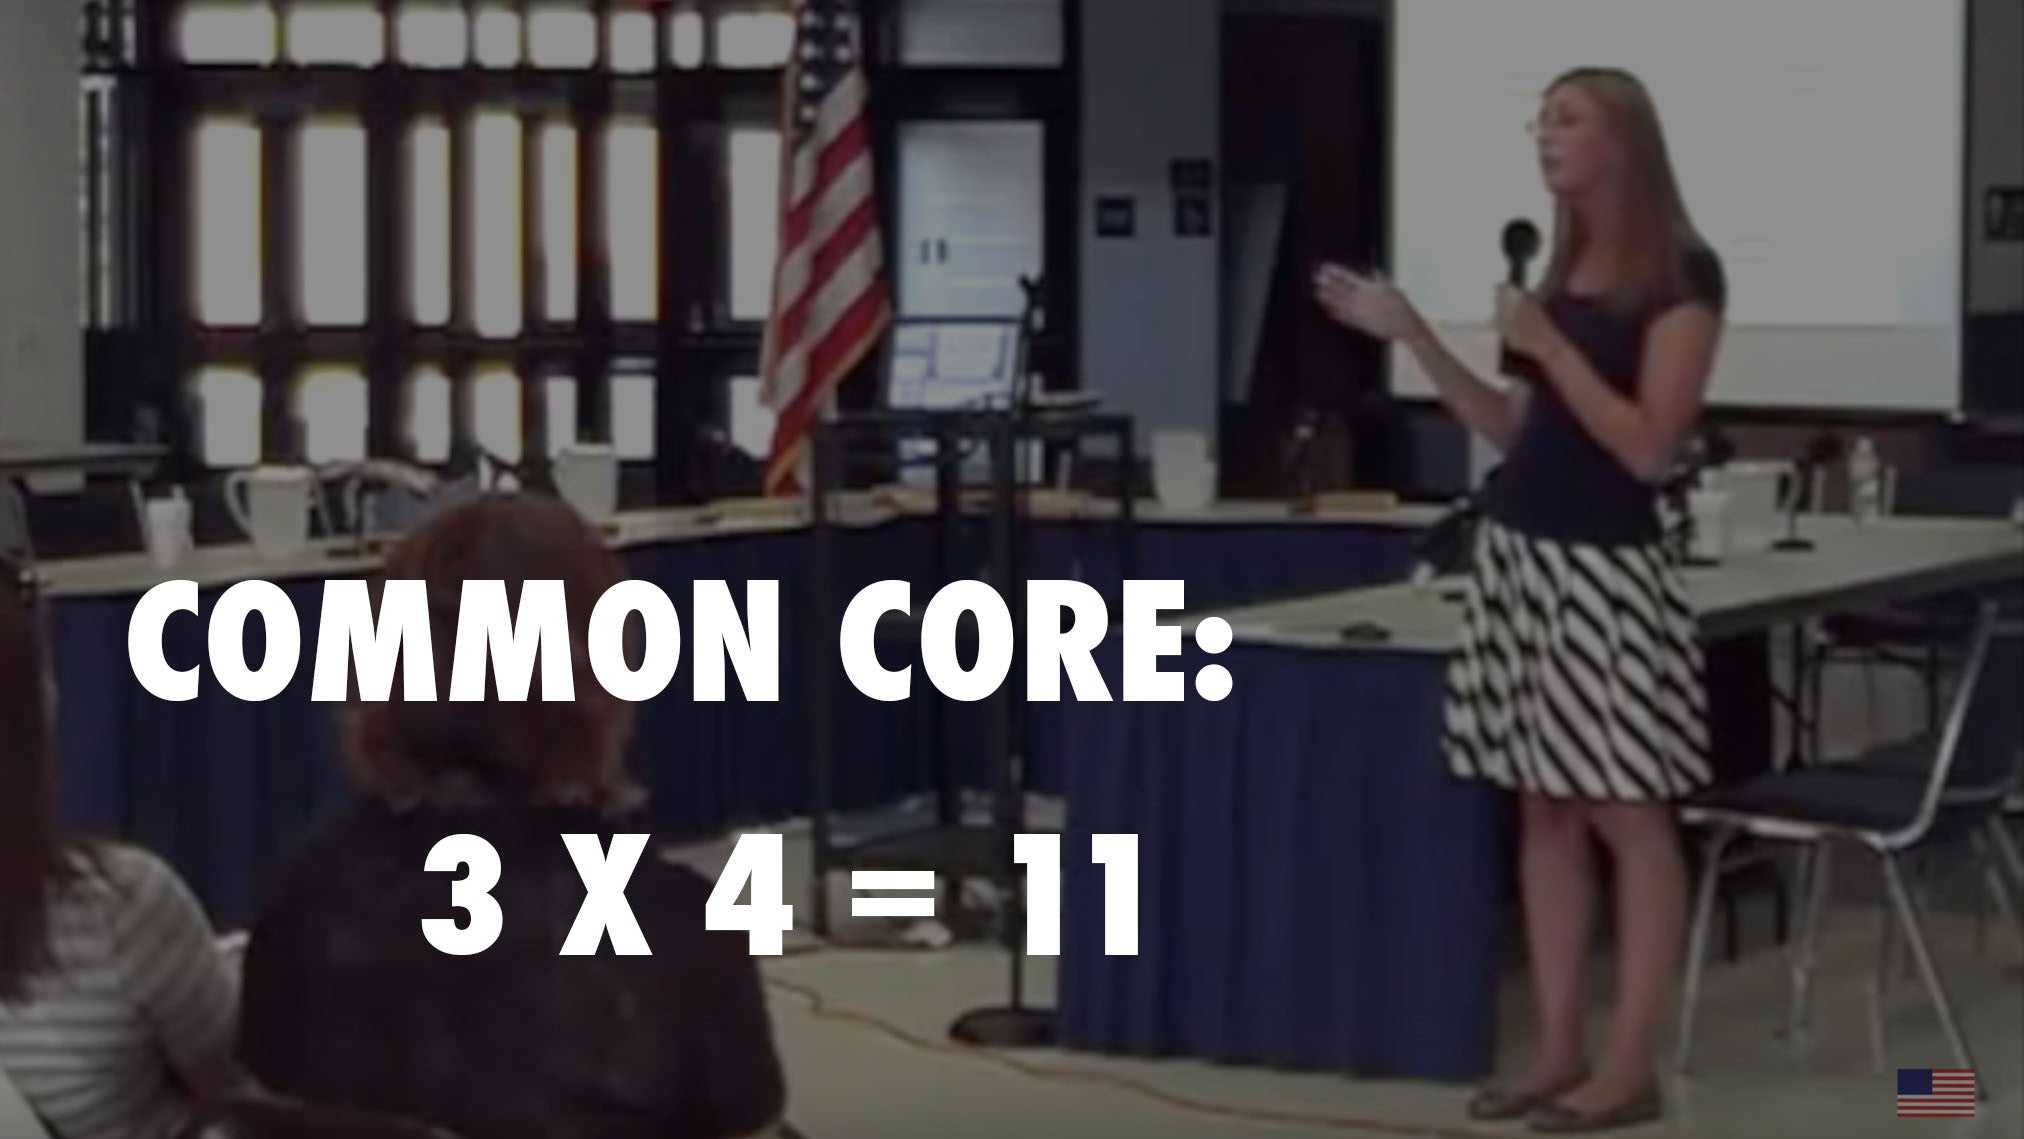 Video: School Official explains 3 x 4 = 11 under Common Core